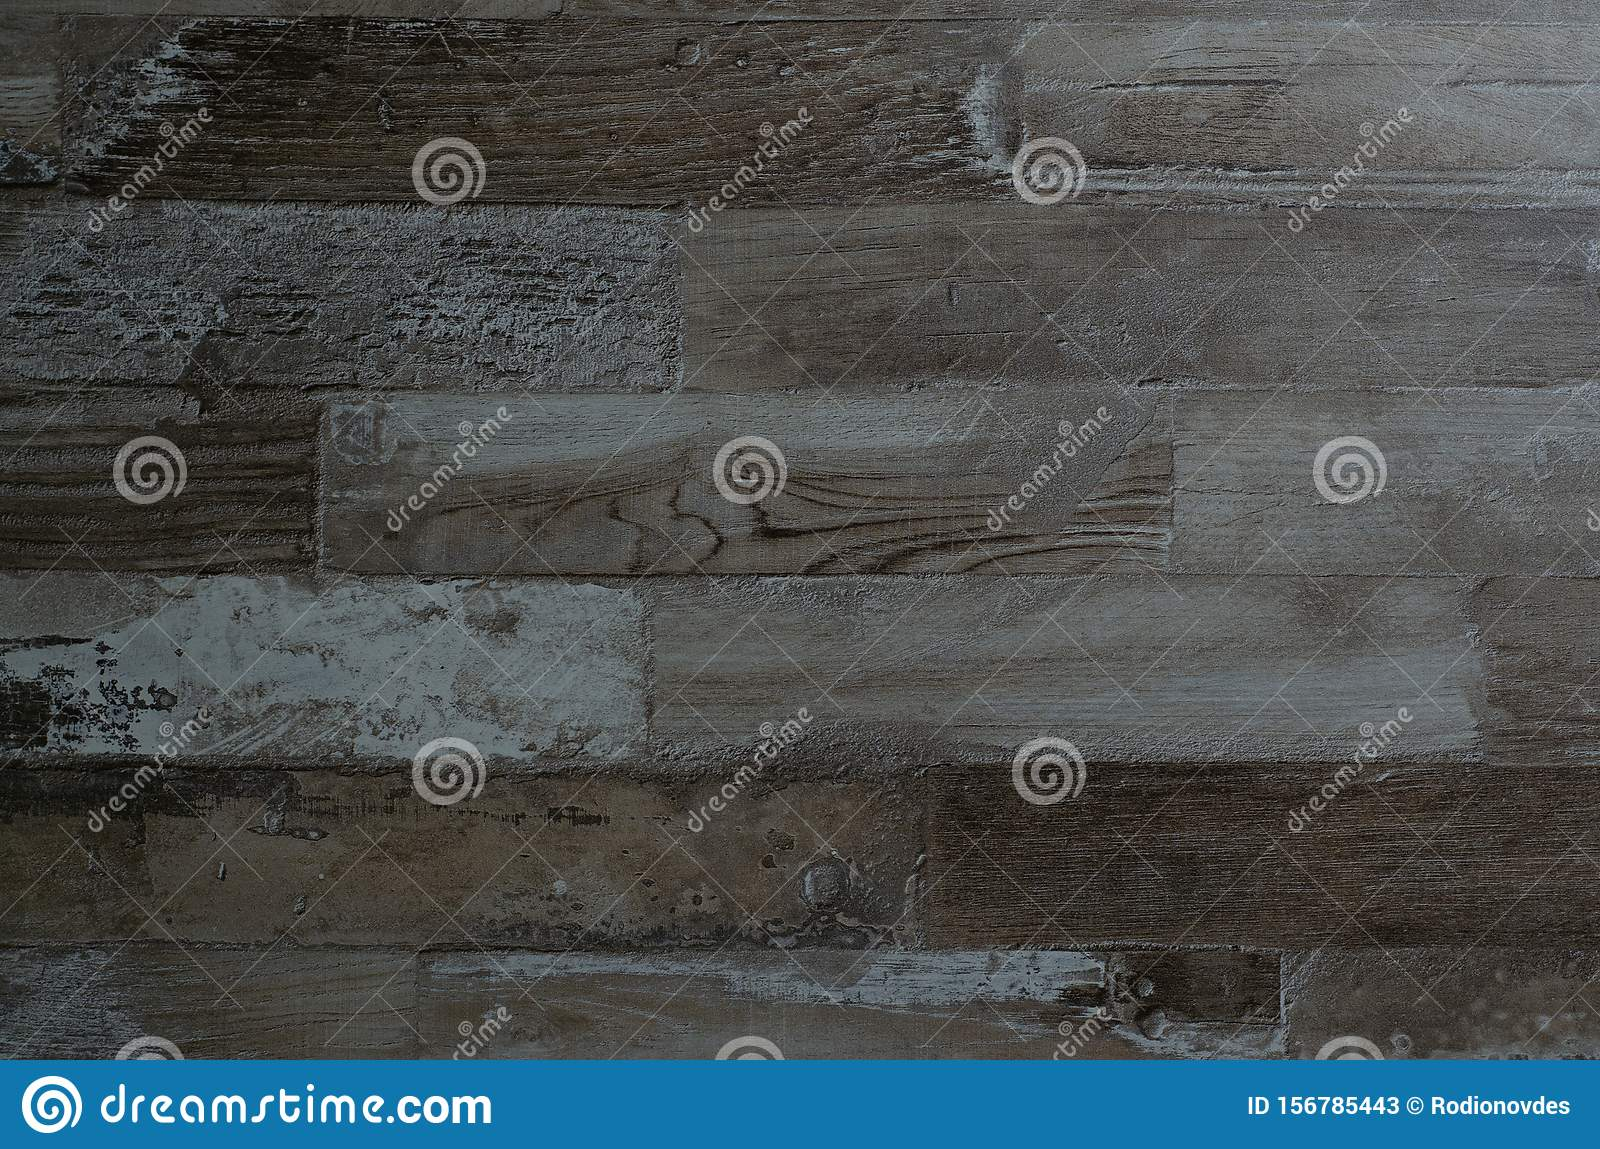 Texture of a wooden table for background in photoshop